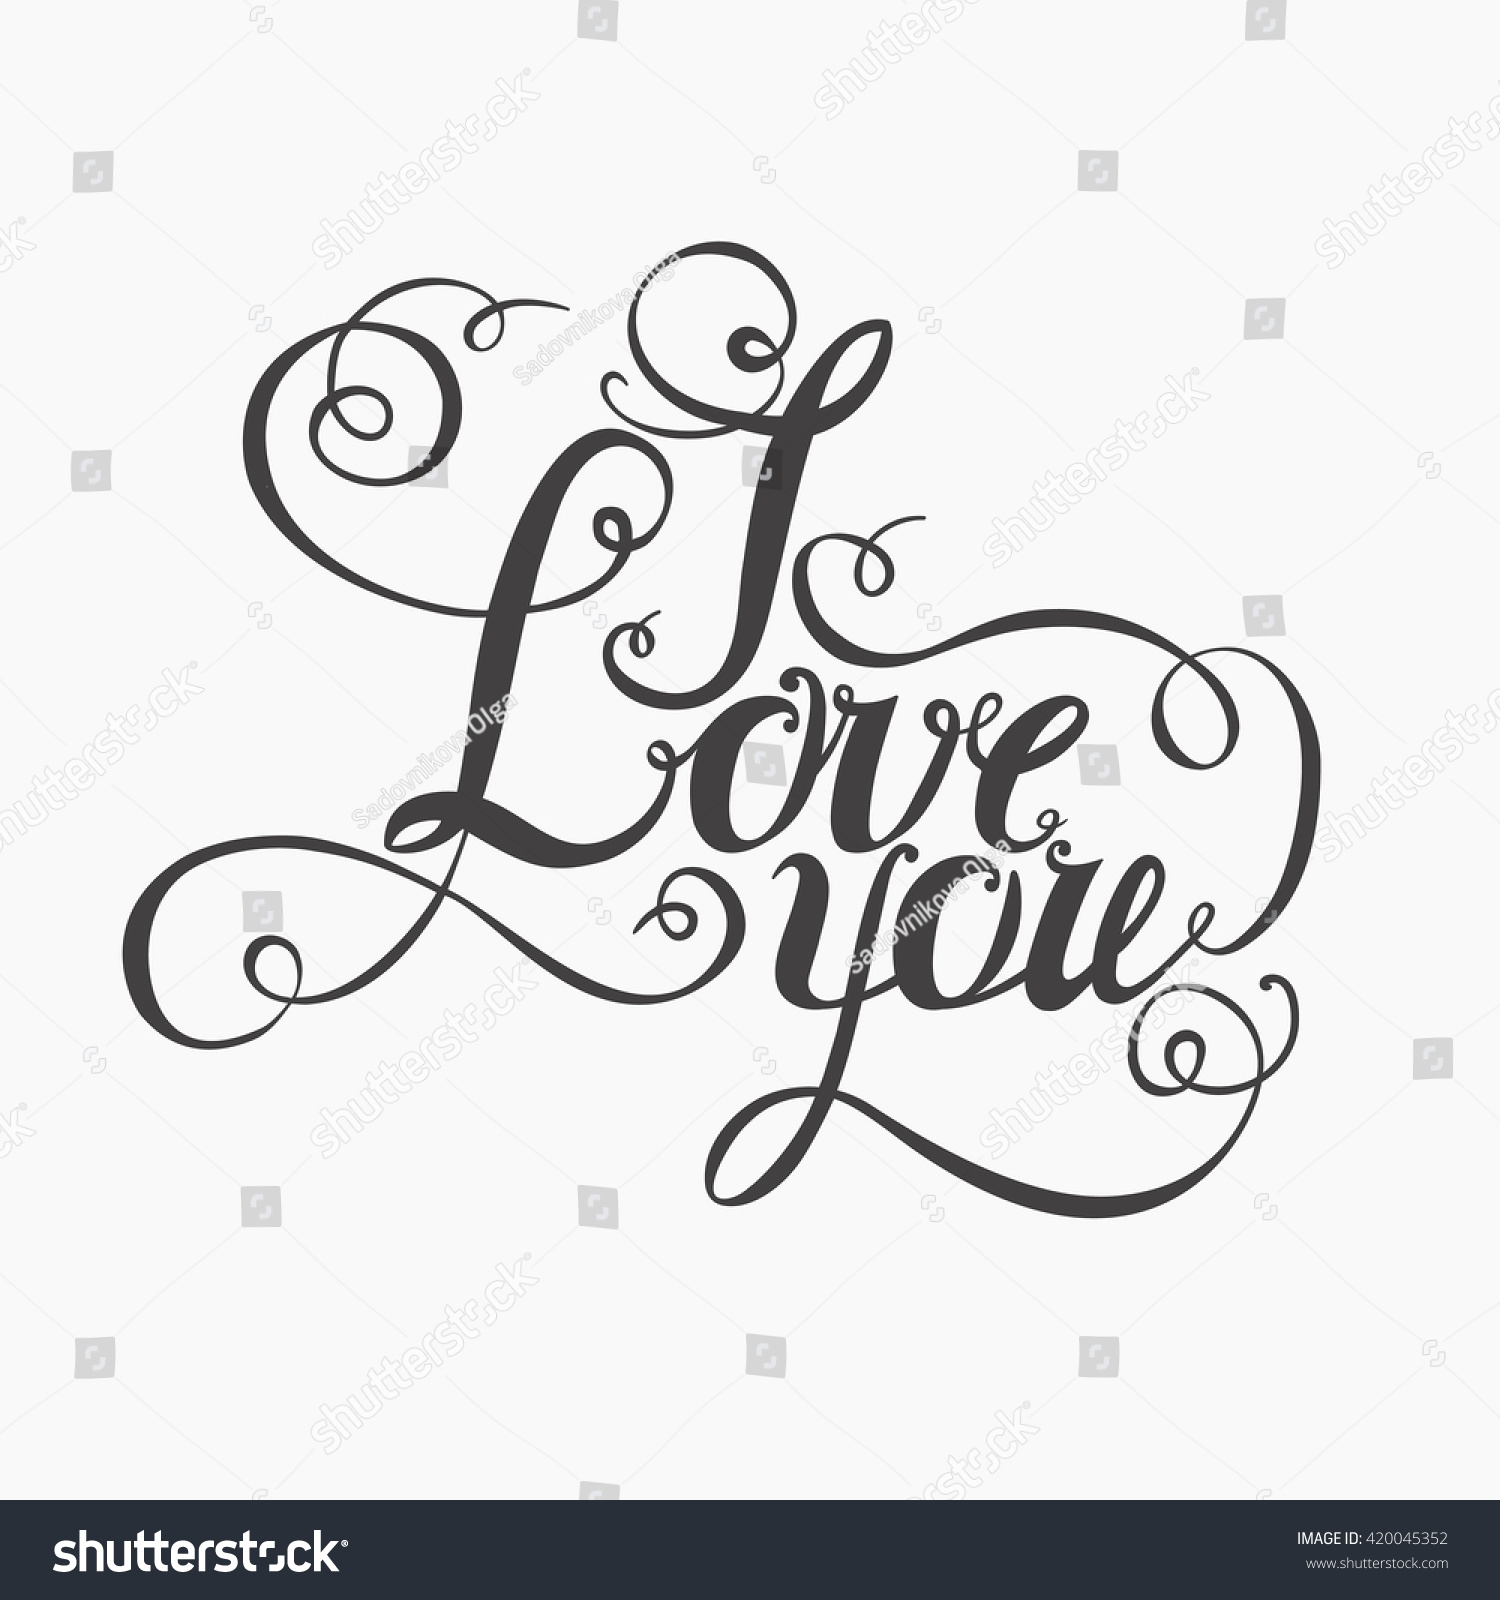 I Love You Drawings: Lettering I Love You Hand Drawing Stock Illustration